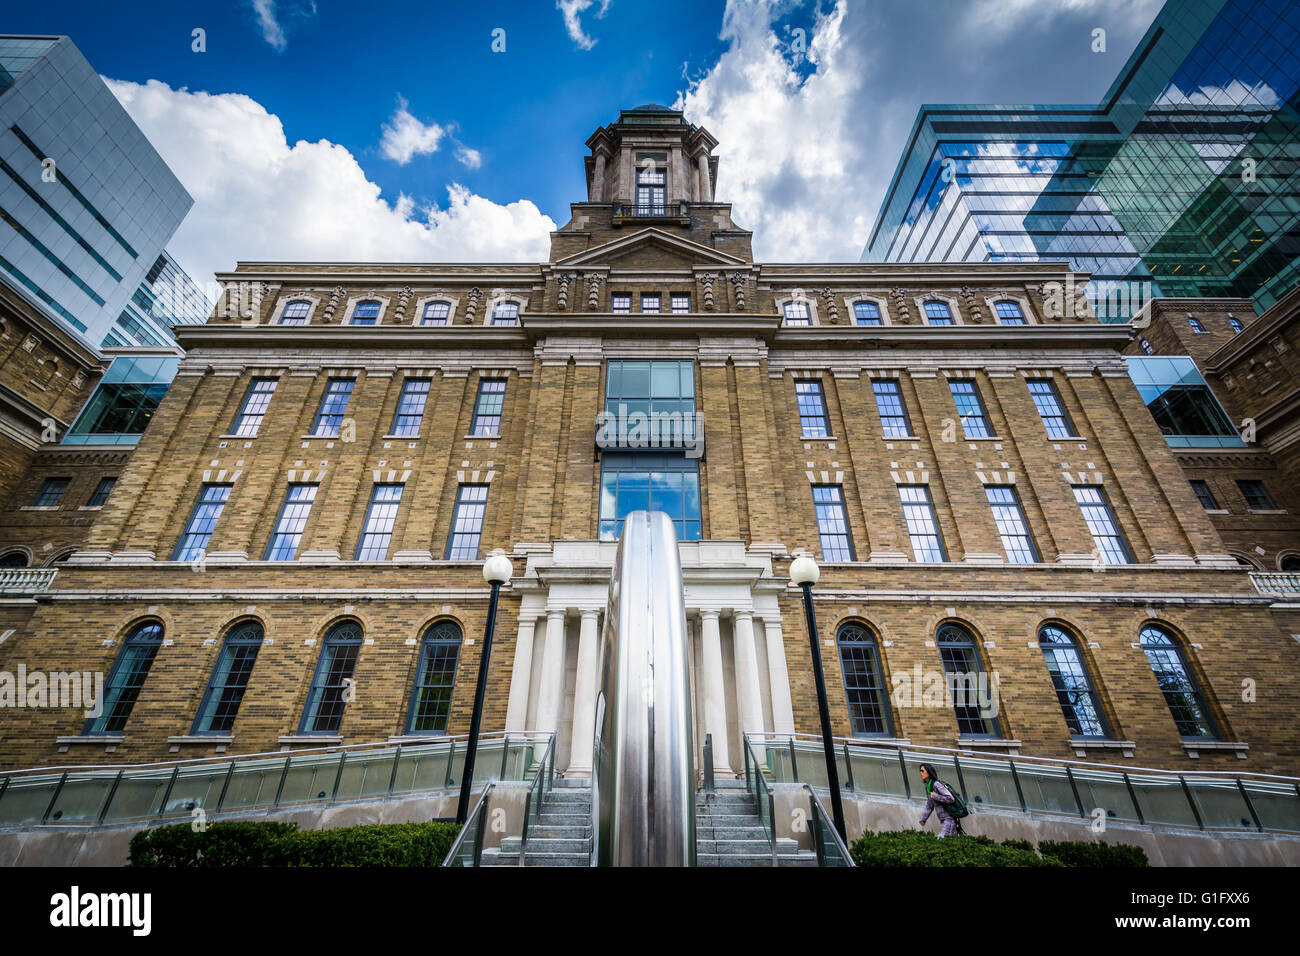 The MaRS Centre, in the Discovery District, Toronto, Ontario. - Stock Image